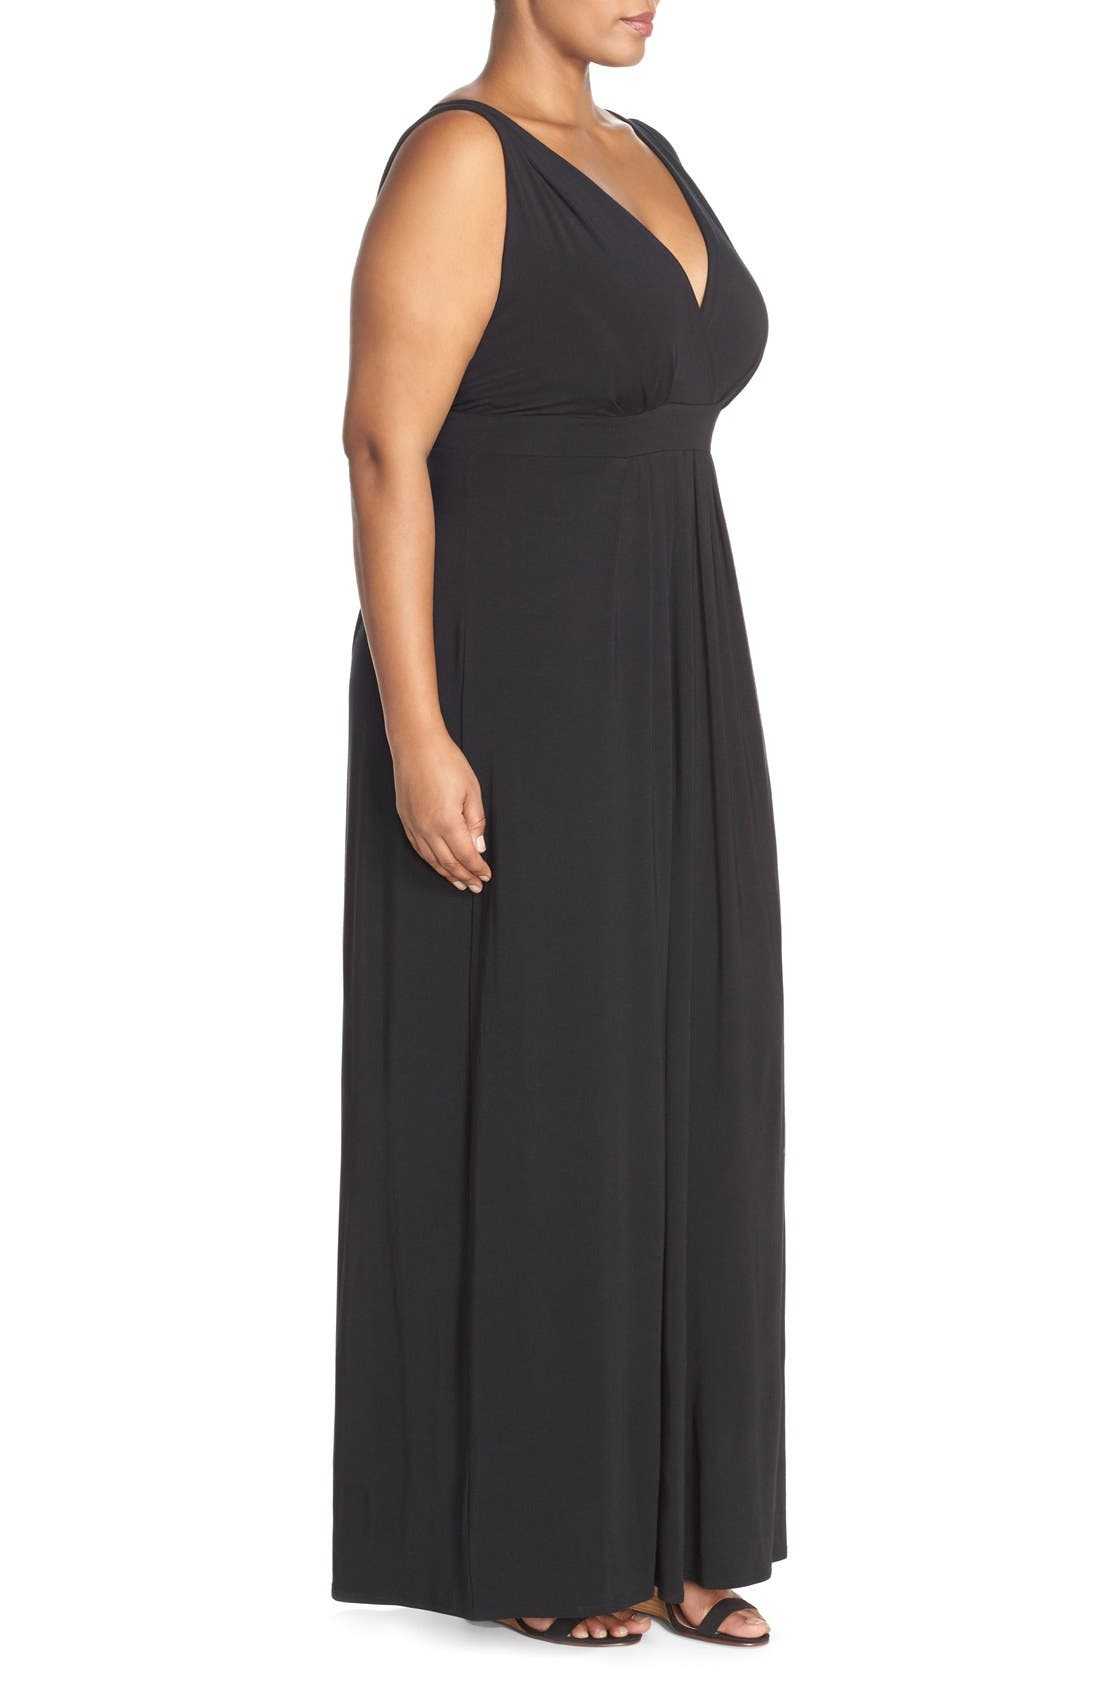 Chloe Empire Waist Maxi Dress,                             Alternate thumbnail 41, color,